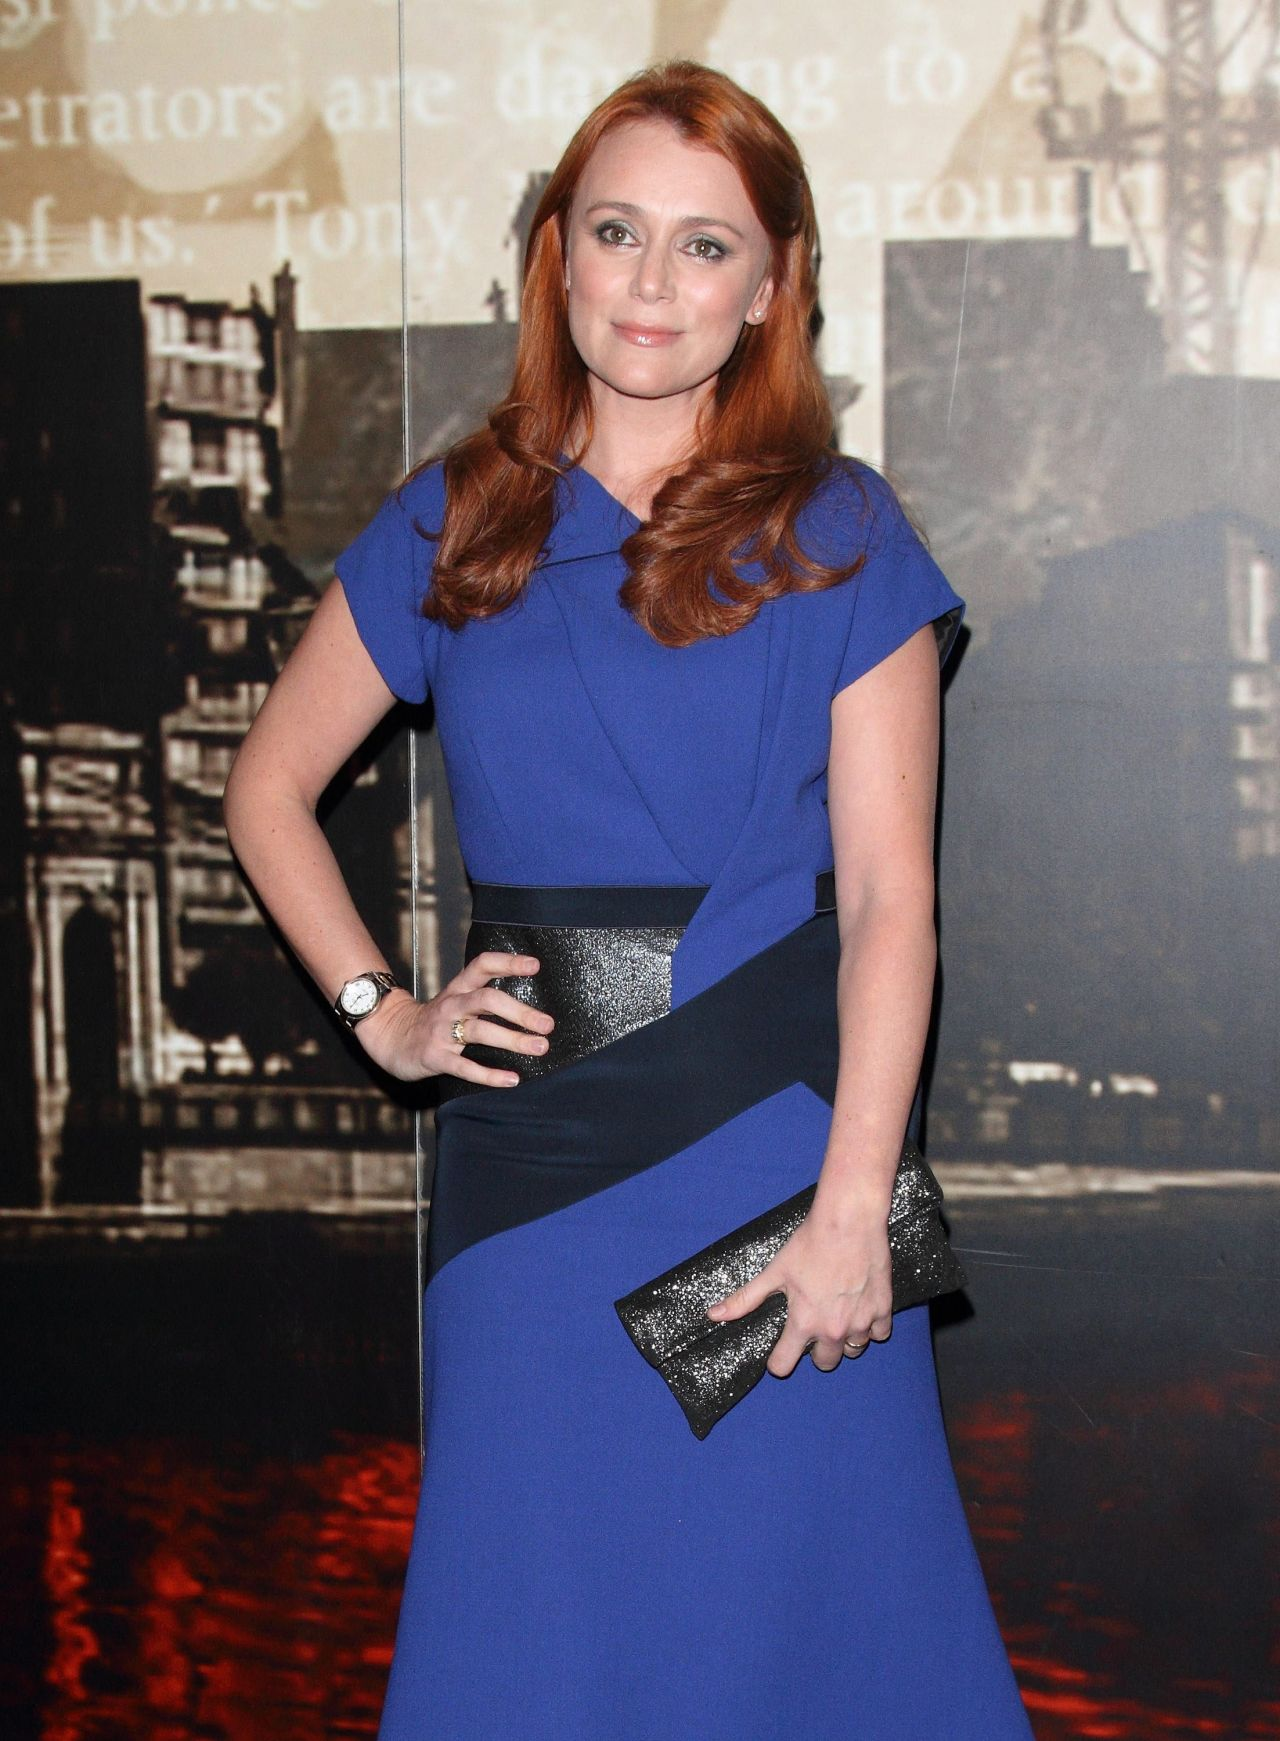 Keeley Hawes at Specsavers Crime Thriller Awards 2014 in London